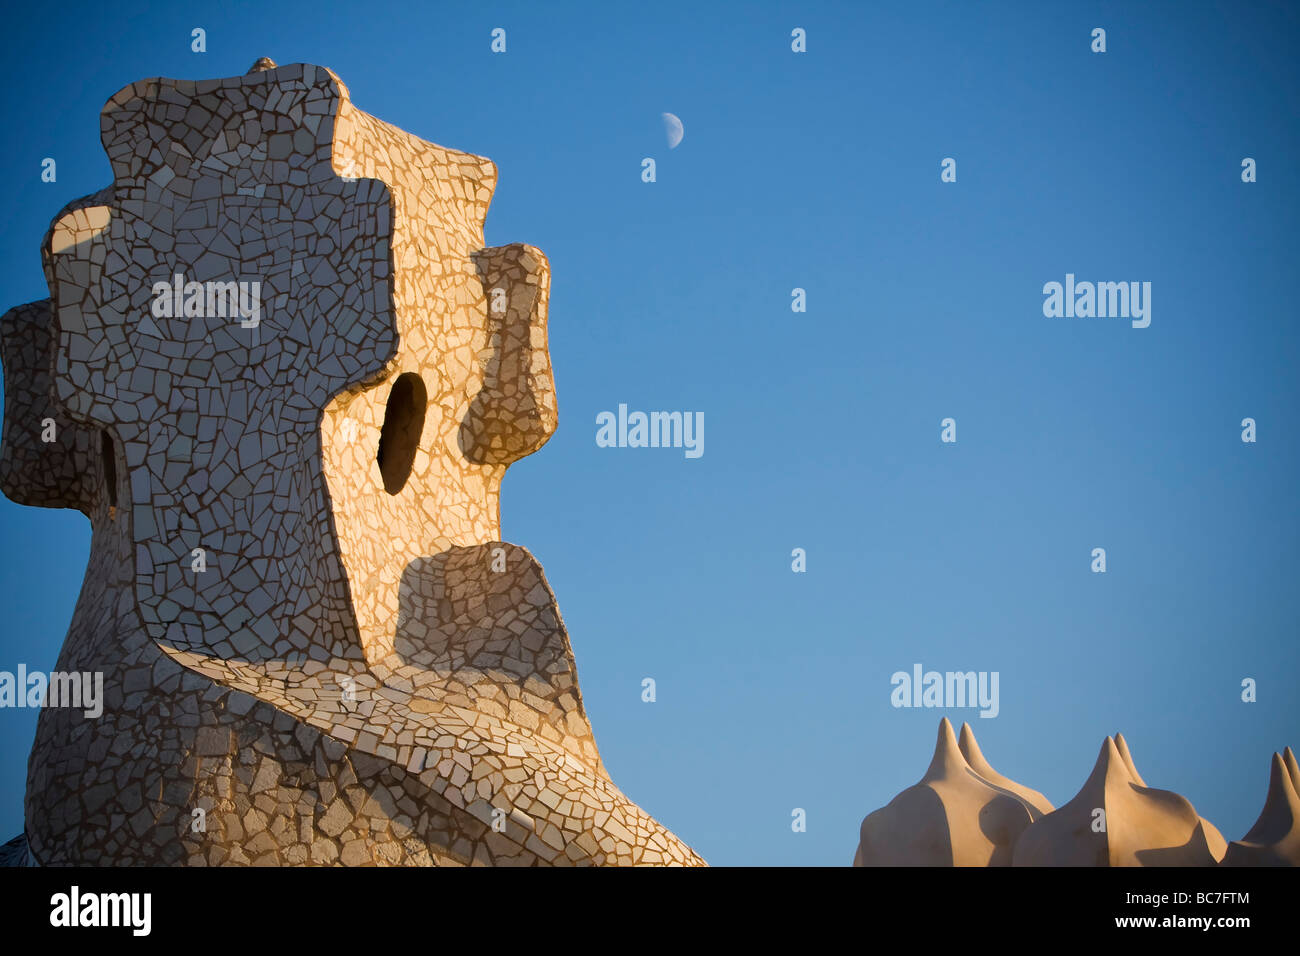 Moon and Chimneys at sunset and blue sky at rooftop of Casa Milà by Gaudi Barcelona Spain - Stock Image